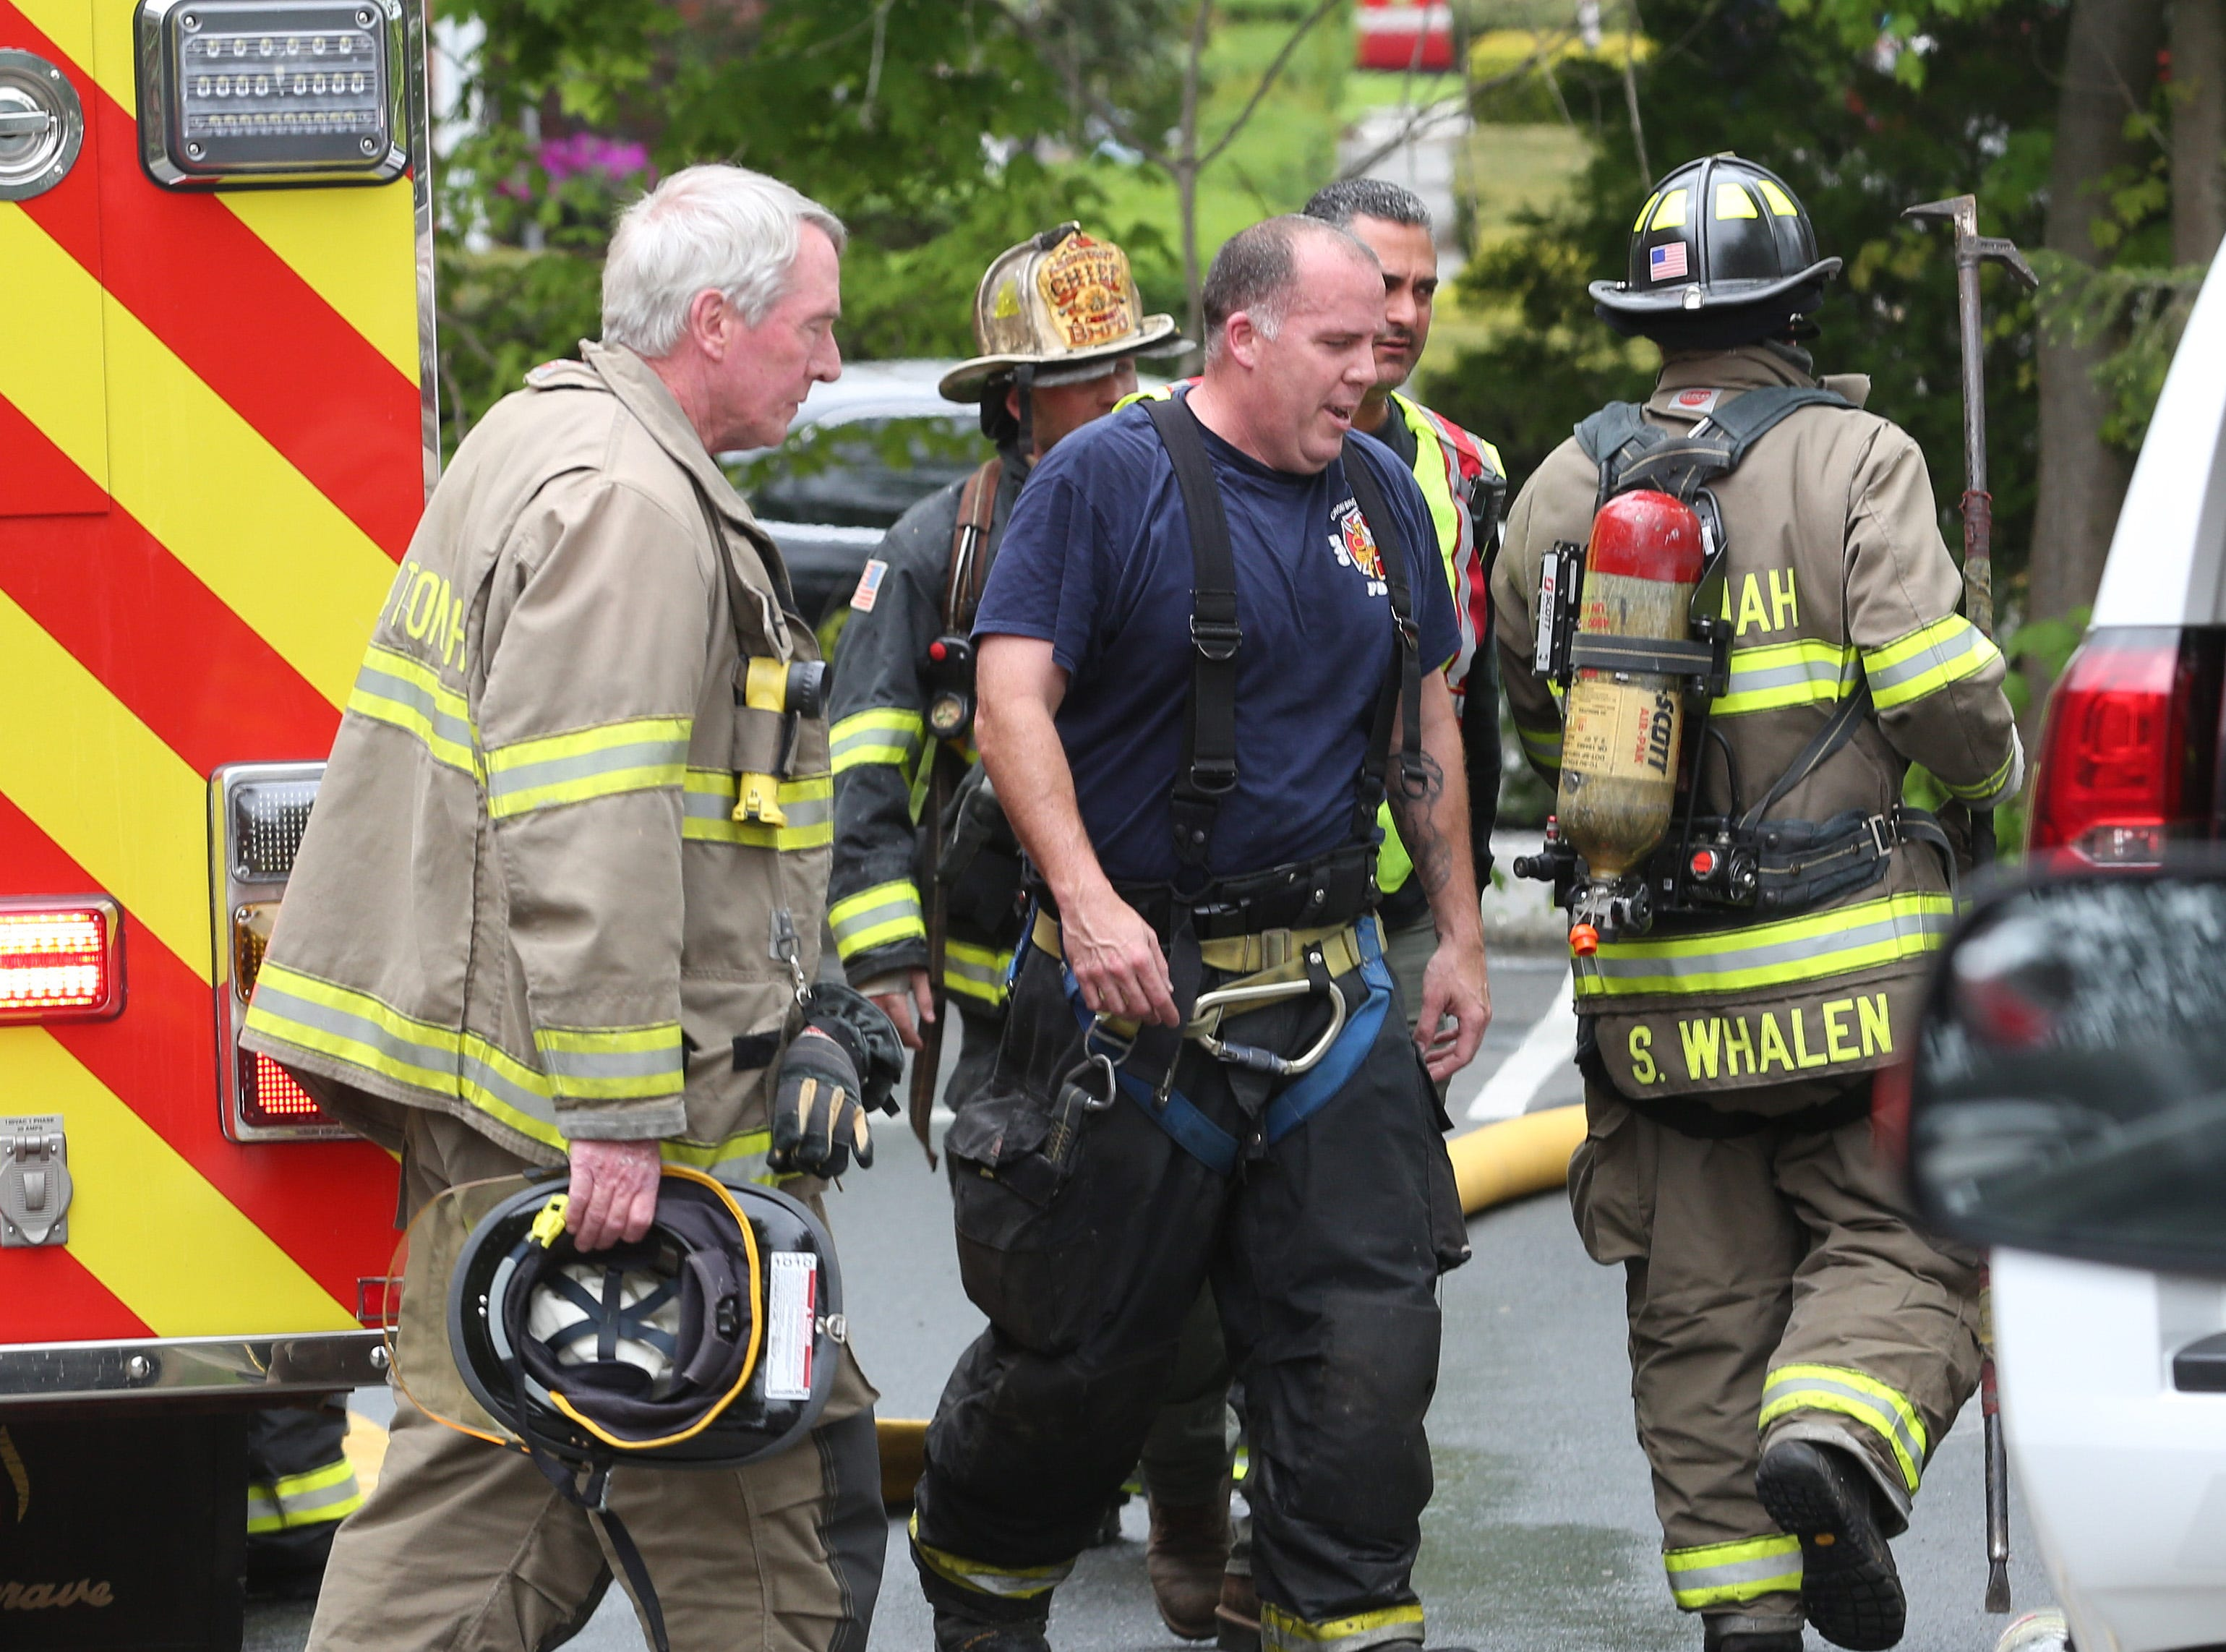 Bedford Hills firefighters quickly extinguished a fire in an apartment on Rome Avenue in Bedford Hills May 9, 2019. Firefighters from Katonah, and Mt. Kisco assisted at the scene.